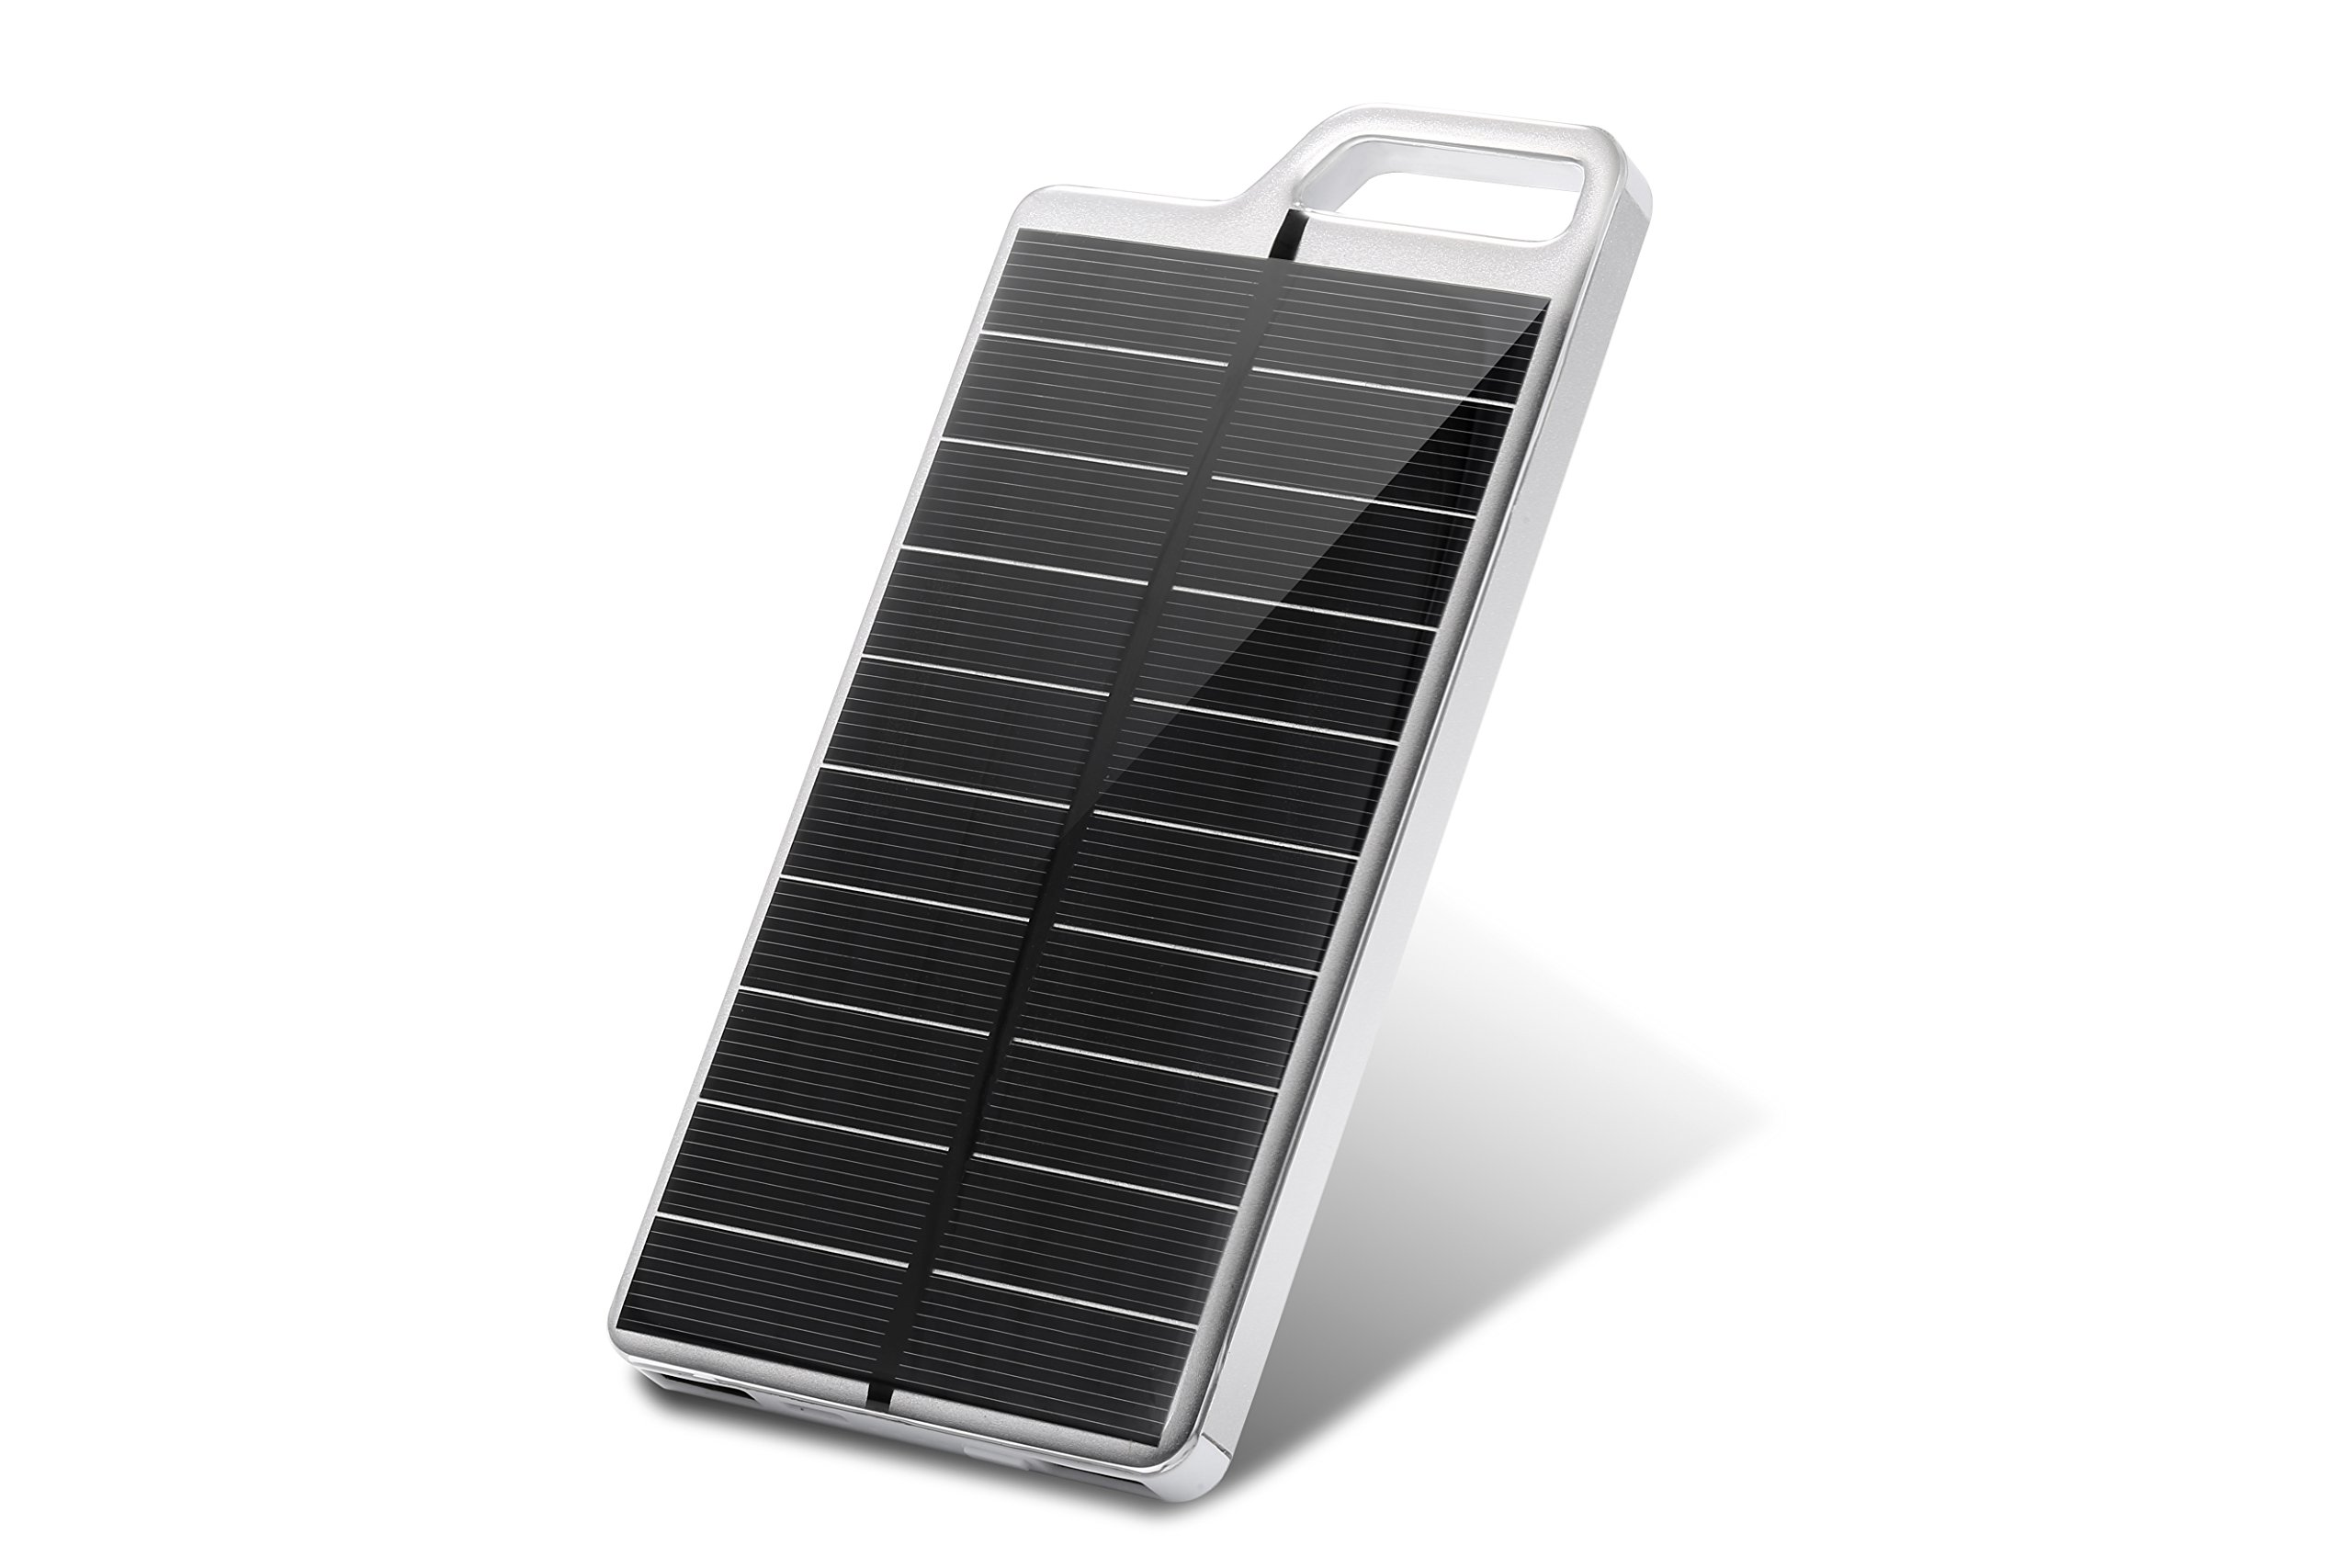 Solar Charger NEW FOR 2018 KUJI PowerGreen High Capacity 10,000mAh Portable Water Resistant/Shockproof/Dustproof/Scratchproof Dual USB Charger for Cell Phones & ALL devices iPhone & Android. (silver)